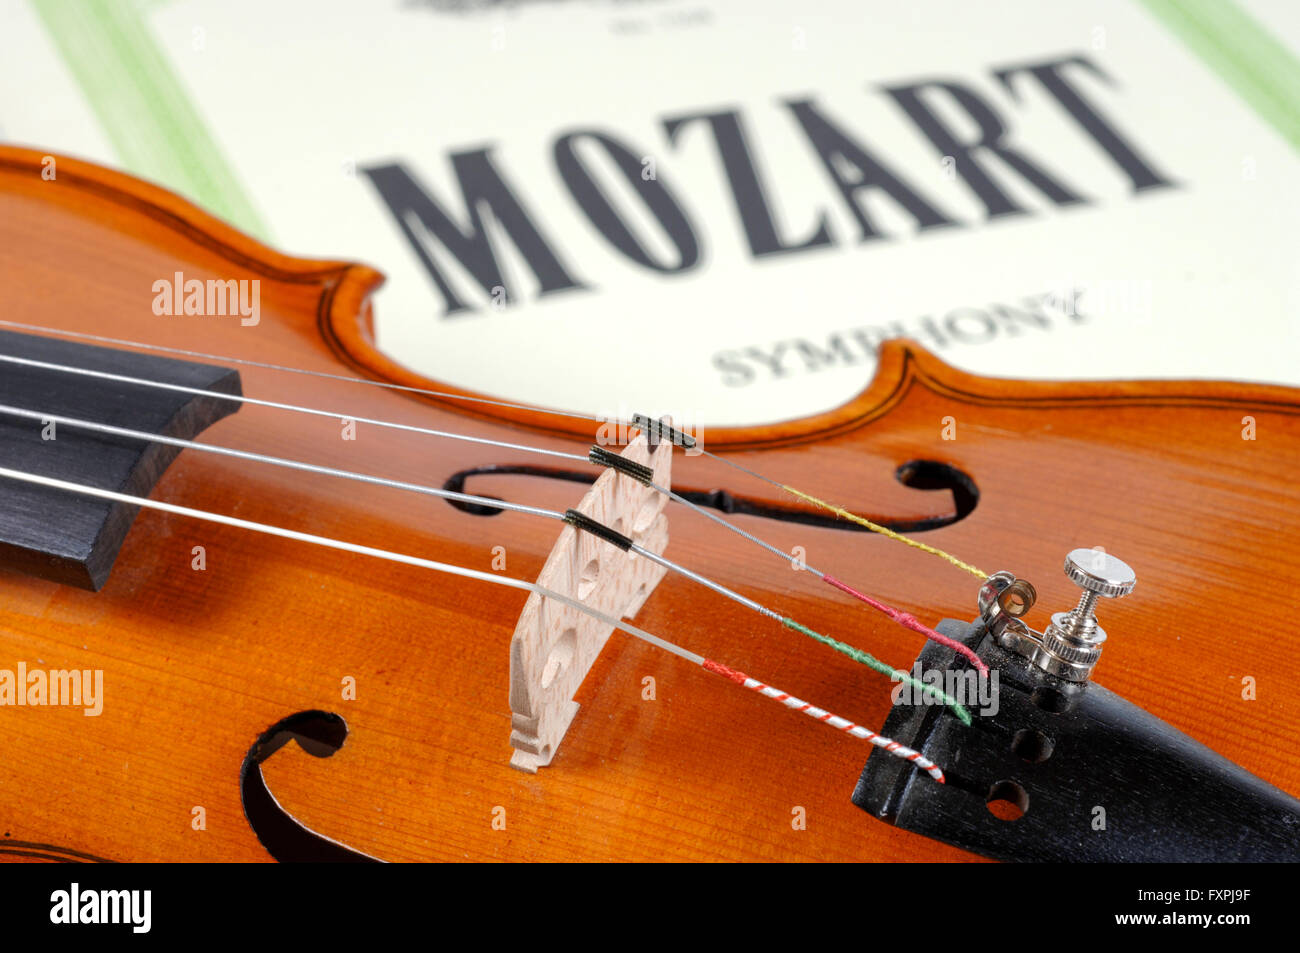 detail of violin as music instrument of orchestra - Stock Image